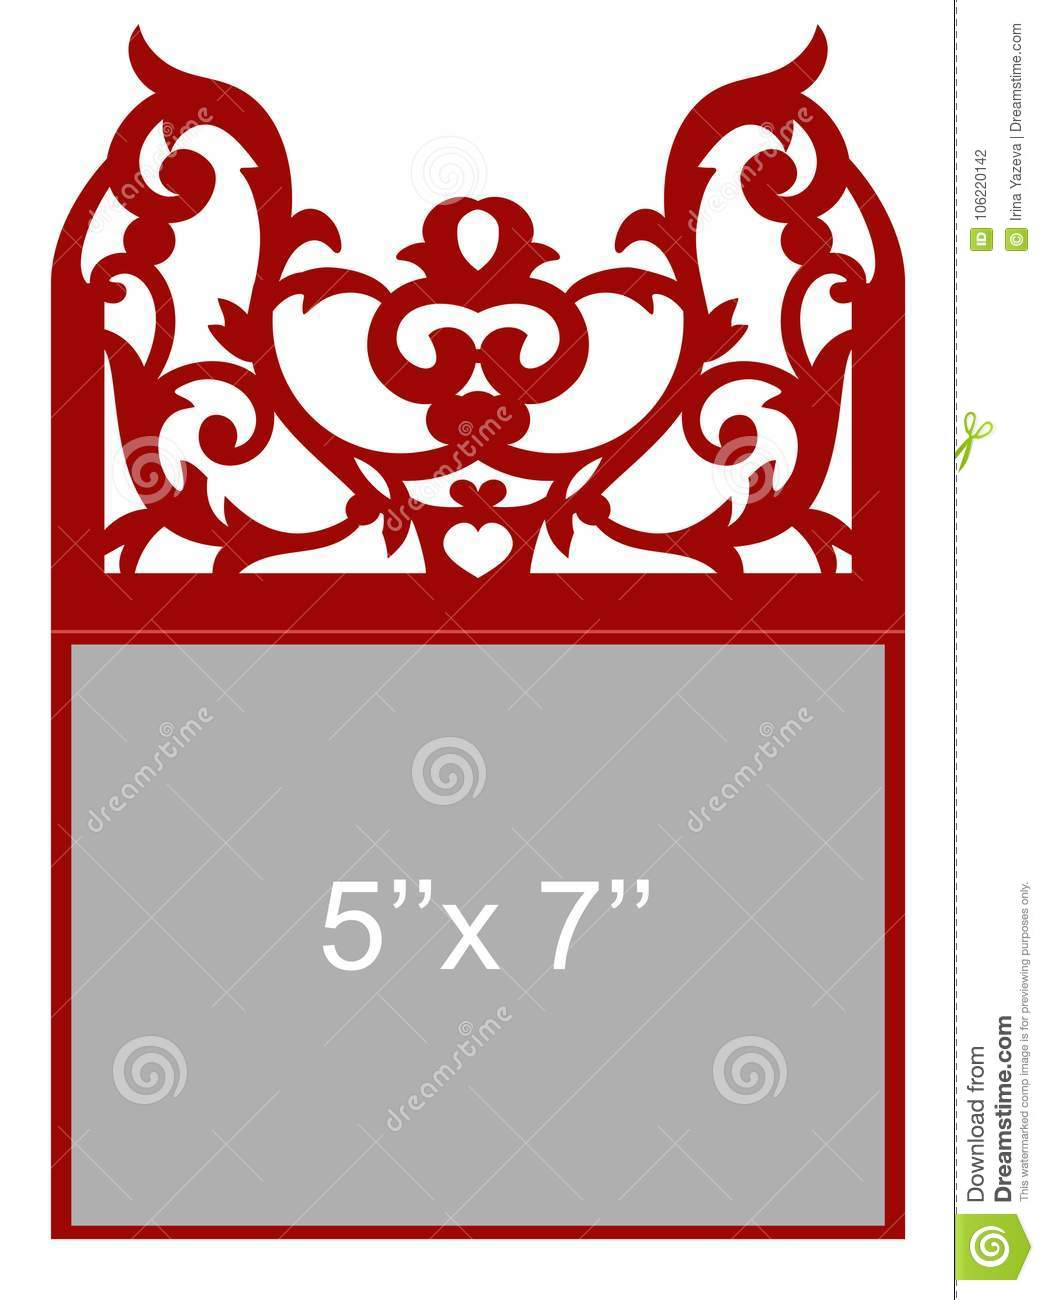 Laser cut vector template stock vector. Illustration of decorative ...